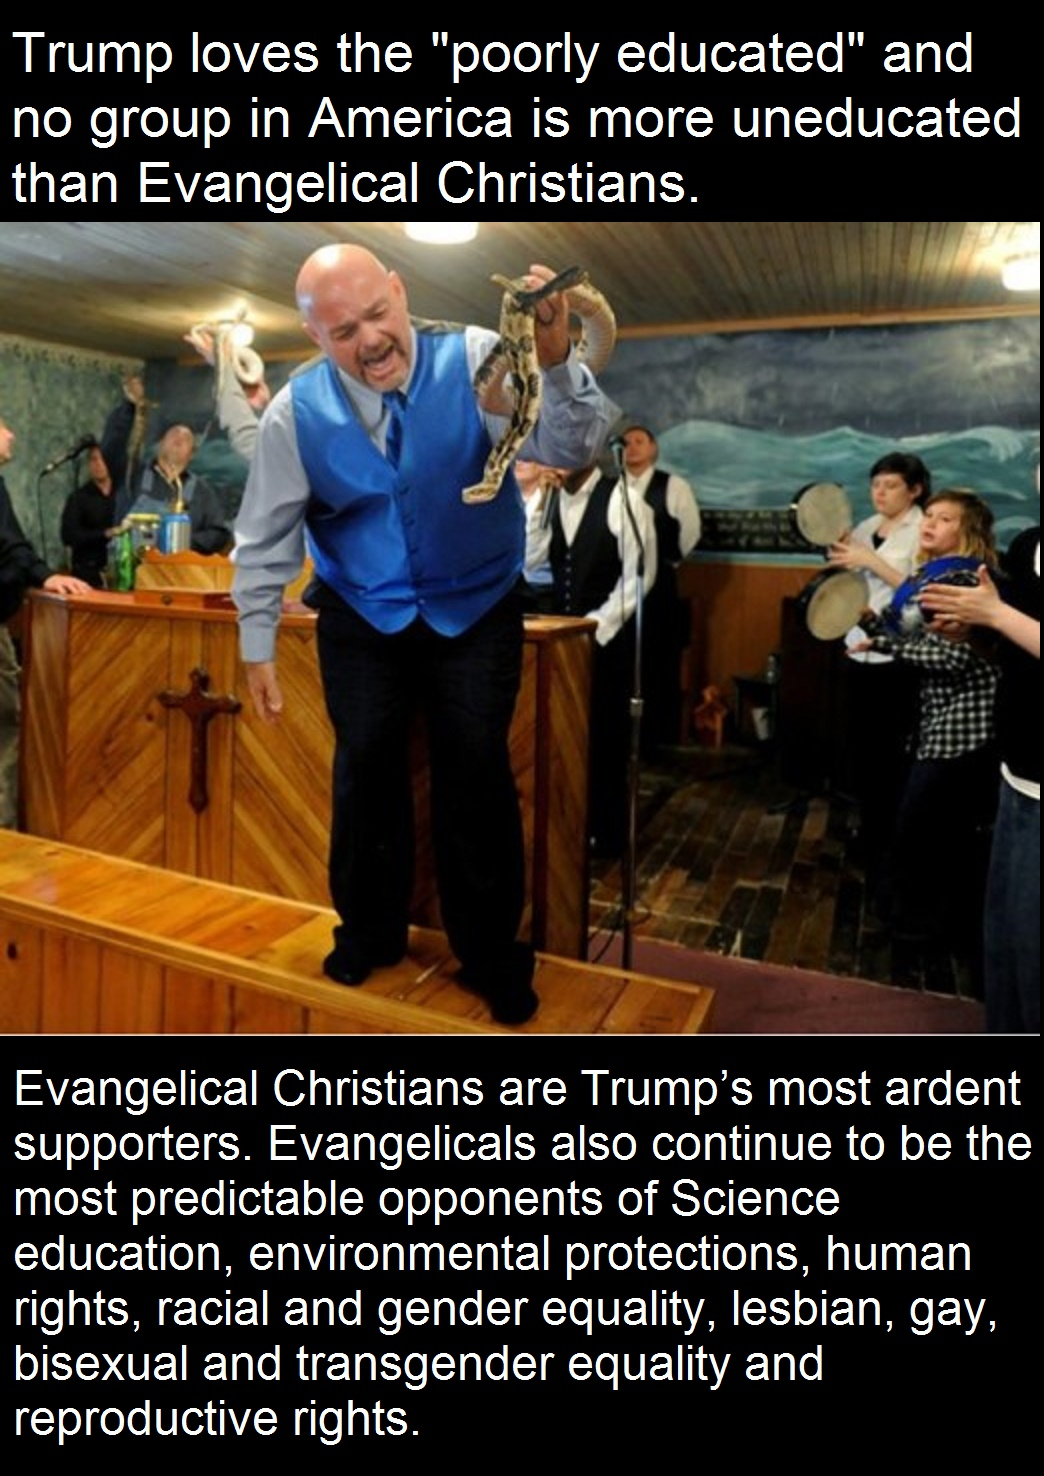 Evangelical Christians are Trump's most ardent supporters. Evangelicalsalso continue to bethe most predictableopponents of Science education, environmental protections, human rights, racial and gender equality, lesbian, gay, bisexual and transgender equality and reproductive rights.